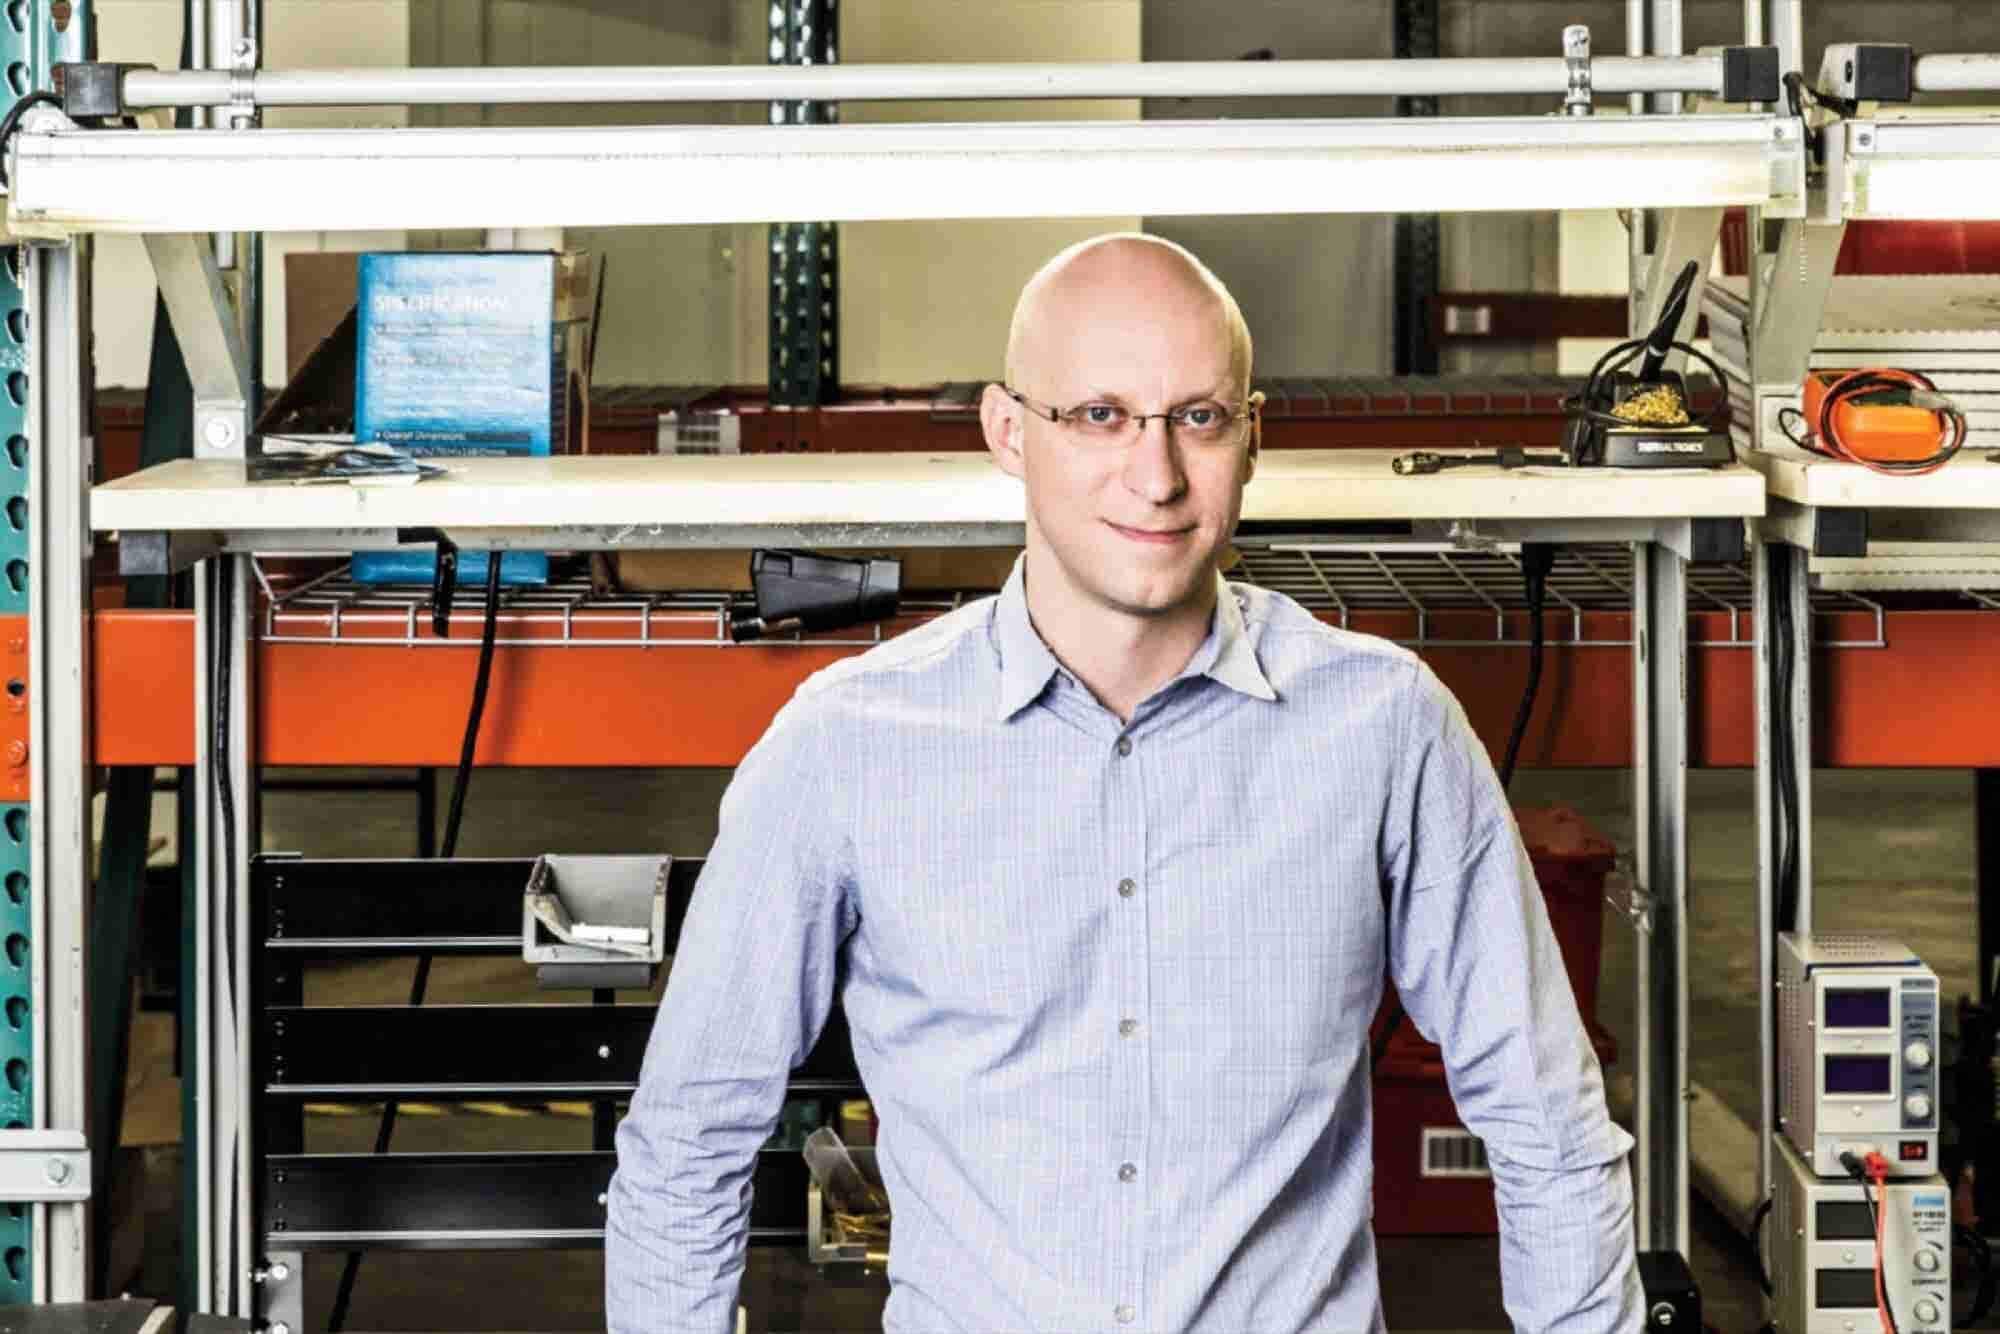 One Man's Software Background Makes Manufacturing Hardware Easy